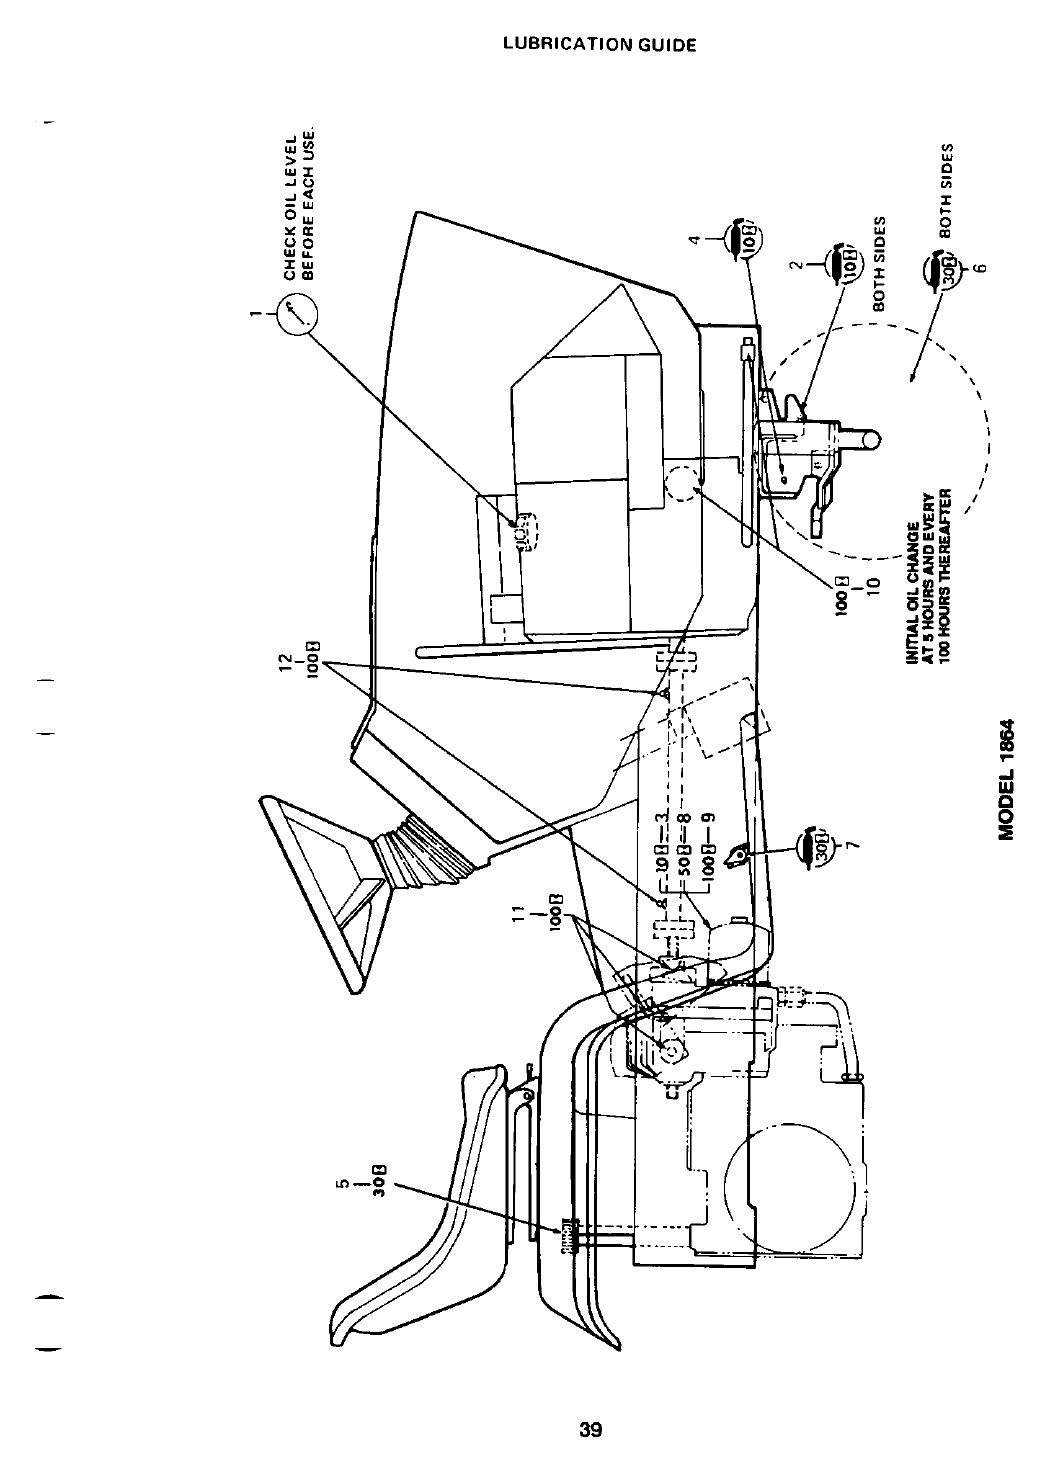 Page 39 of Cub Cadet Lawn Mower 1864 User Guide